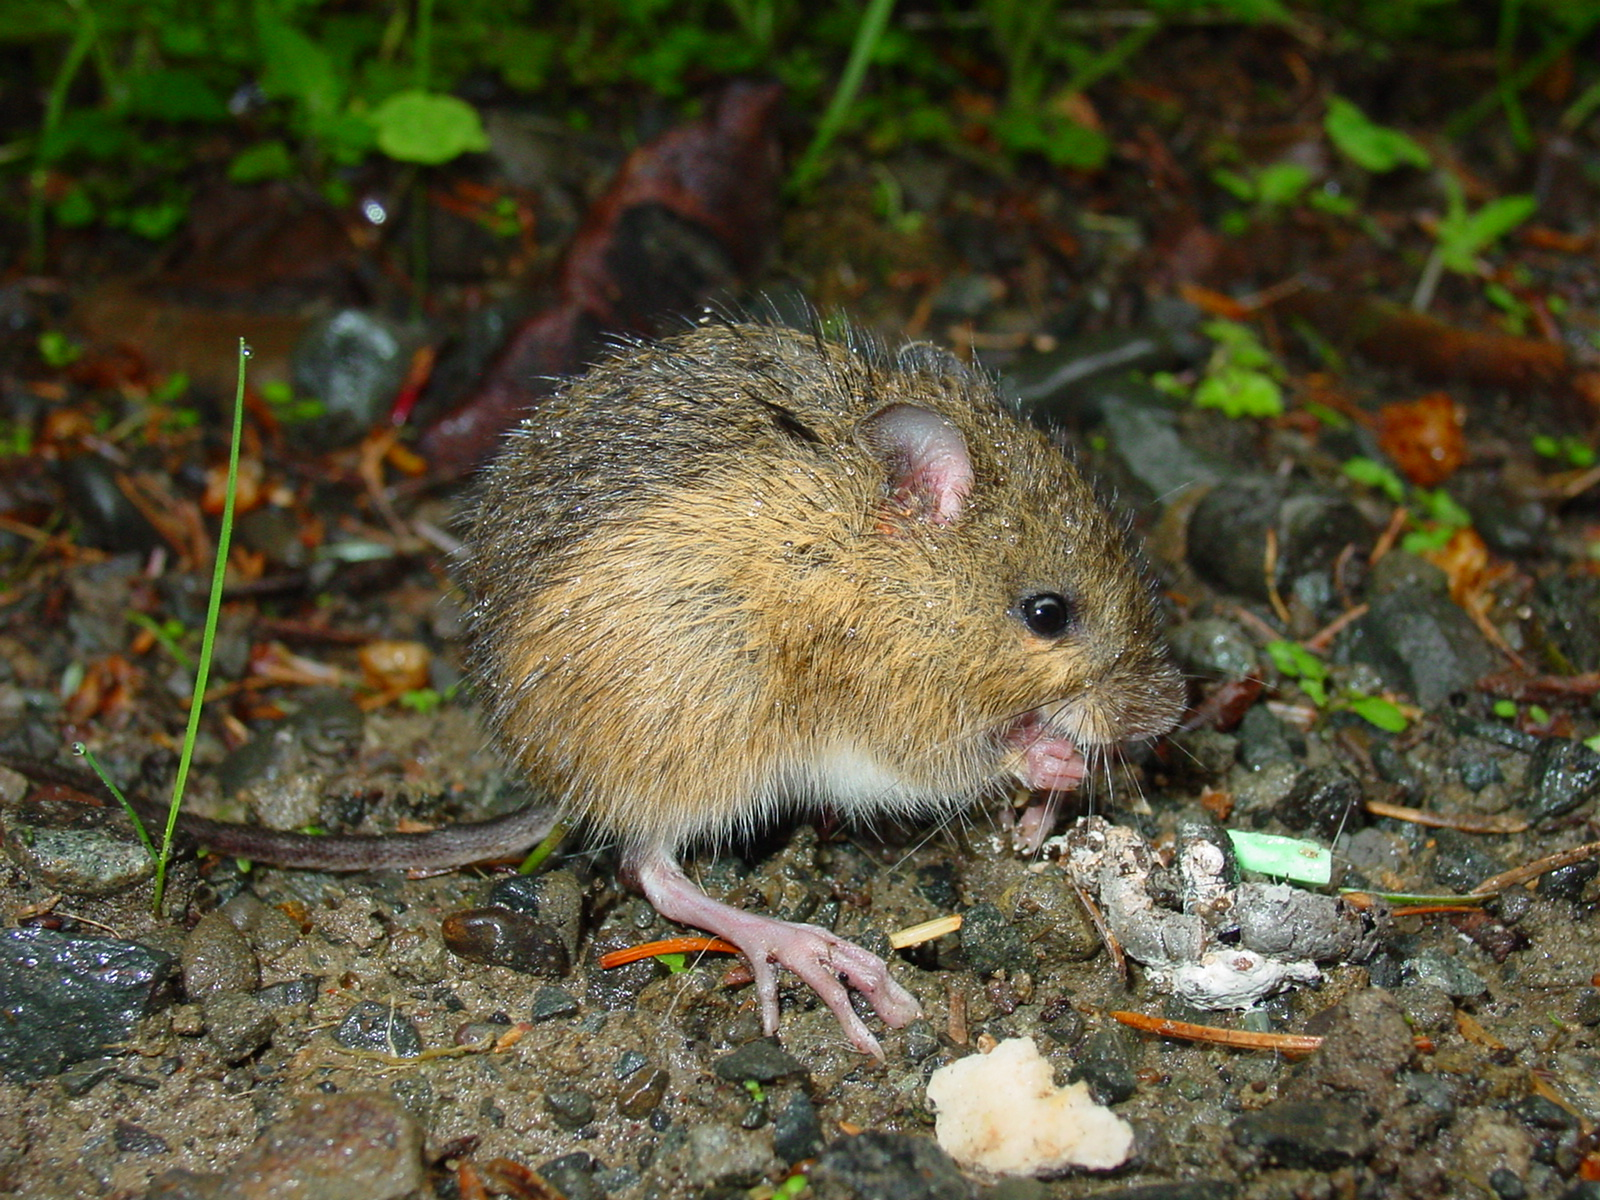 Environmental Groups Sue U.S. Forest Service to Protect Endangered Jumping Mouse